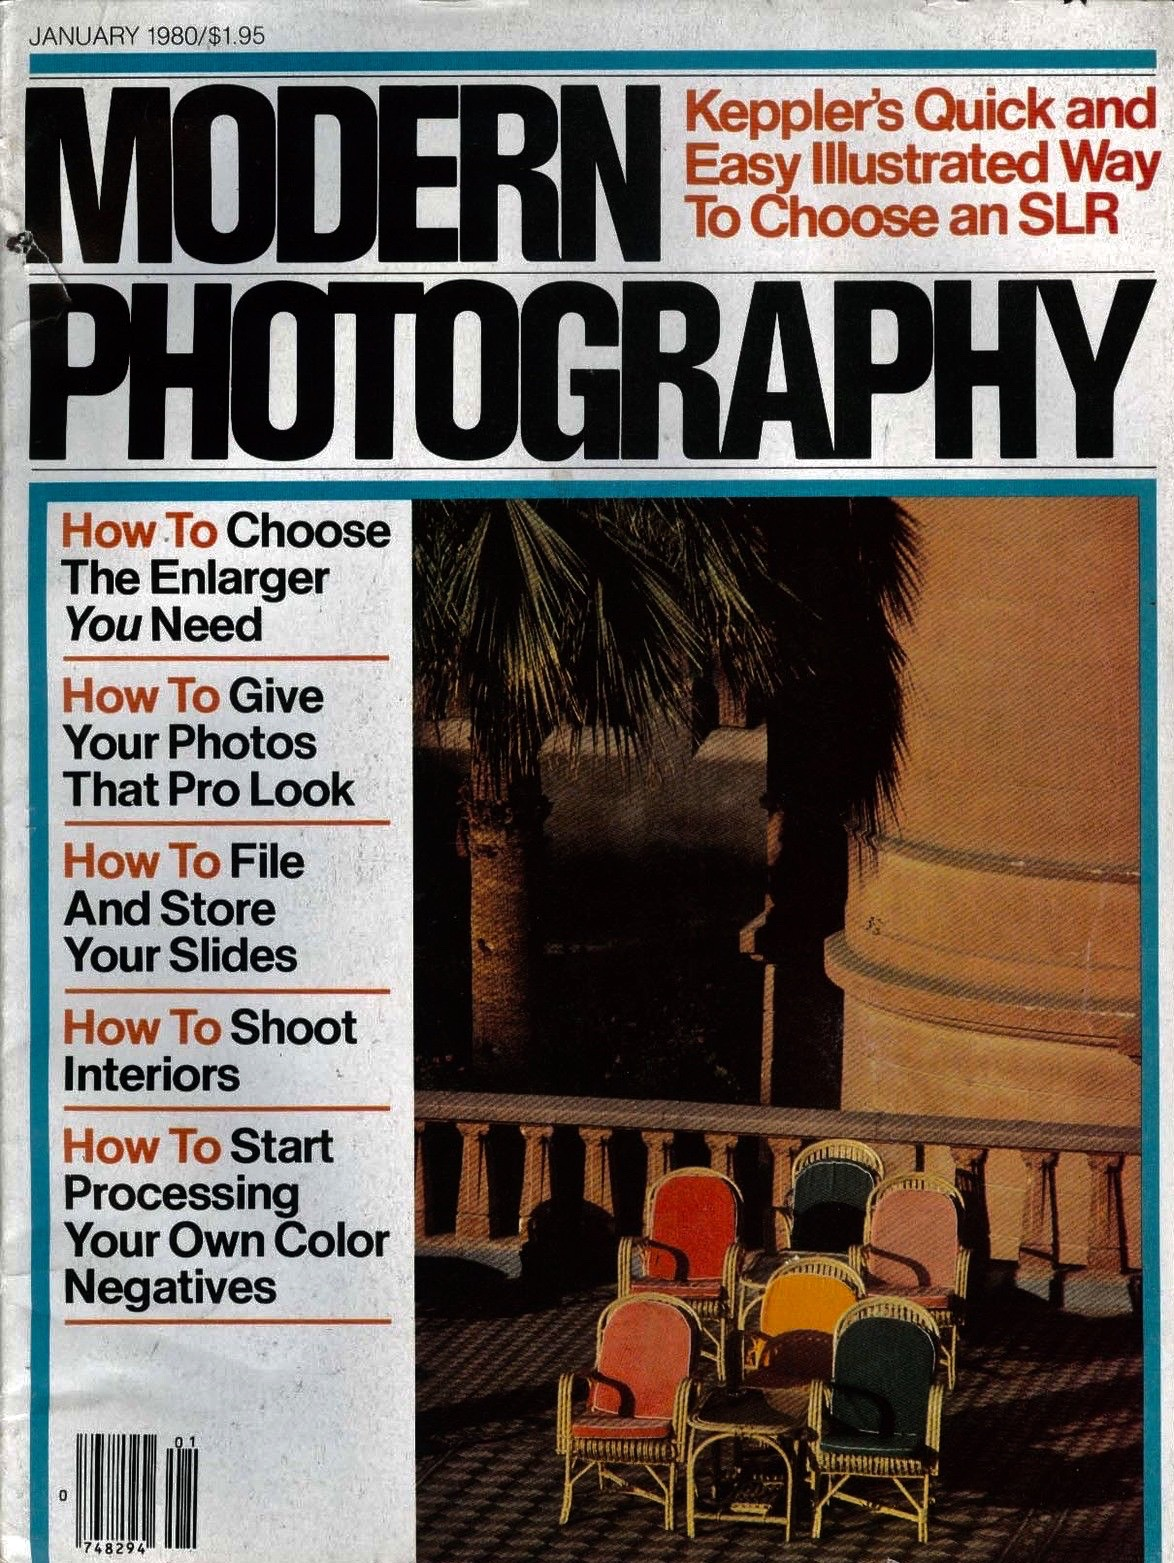 I subscribed to the now defunct Modern Photography magazine from 1973 to around 1980